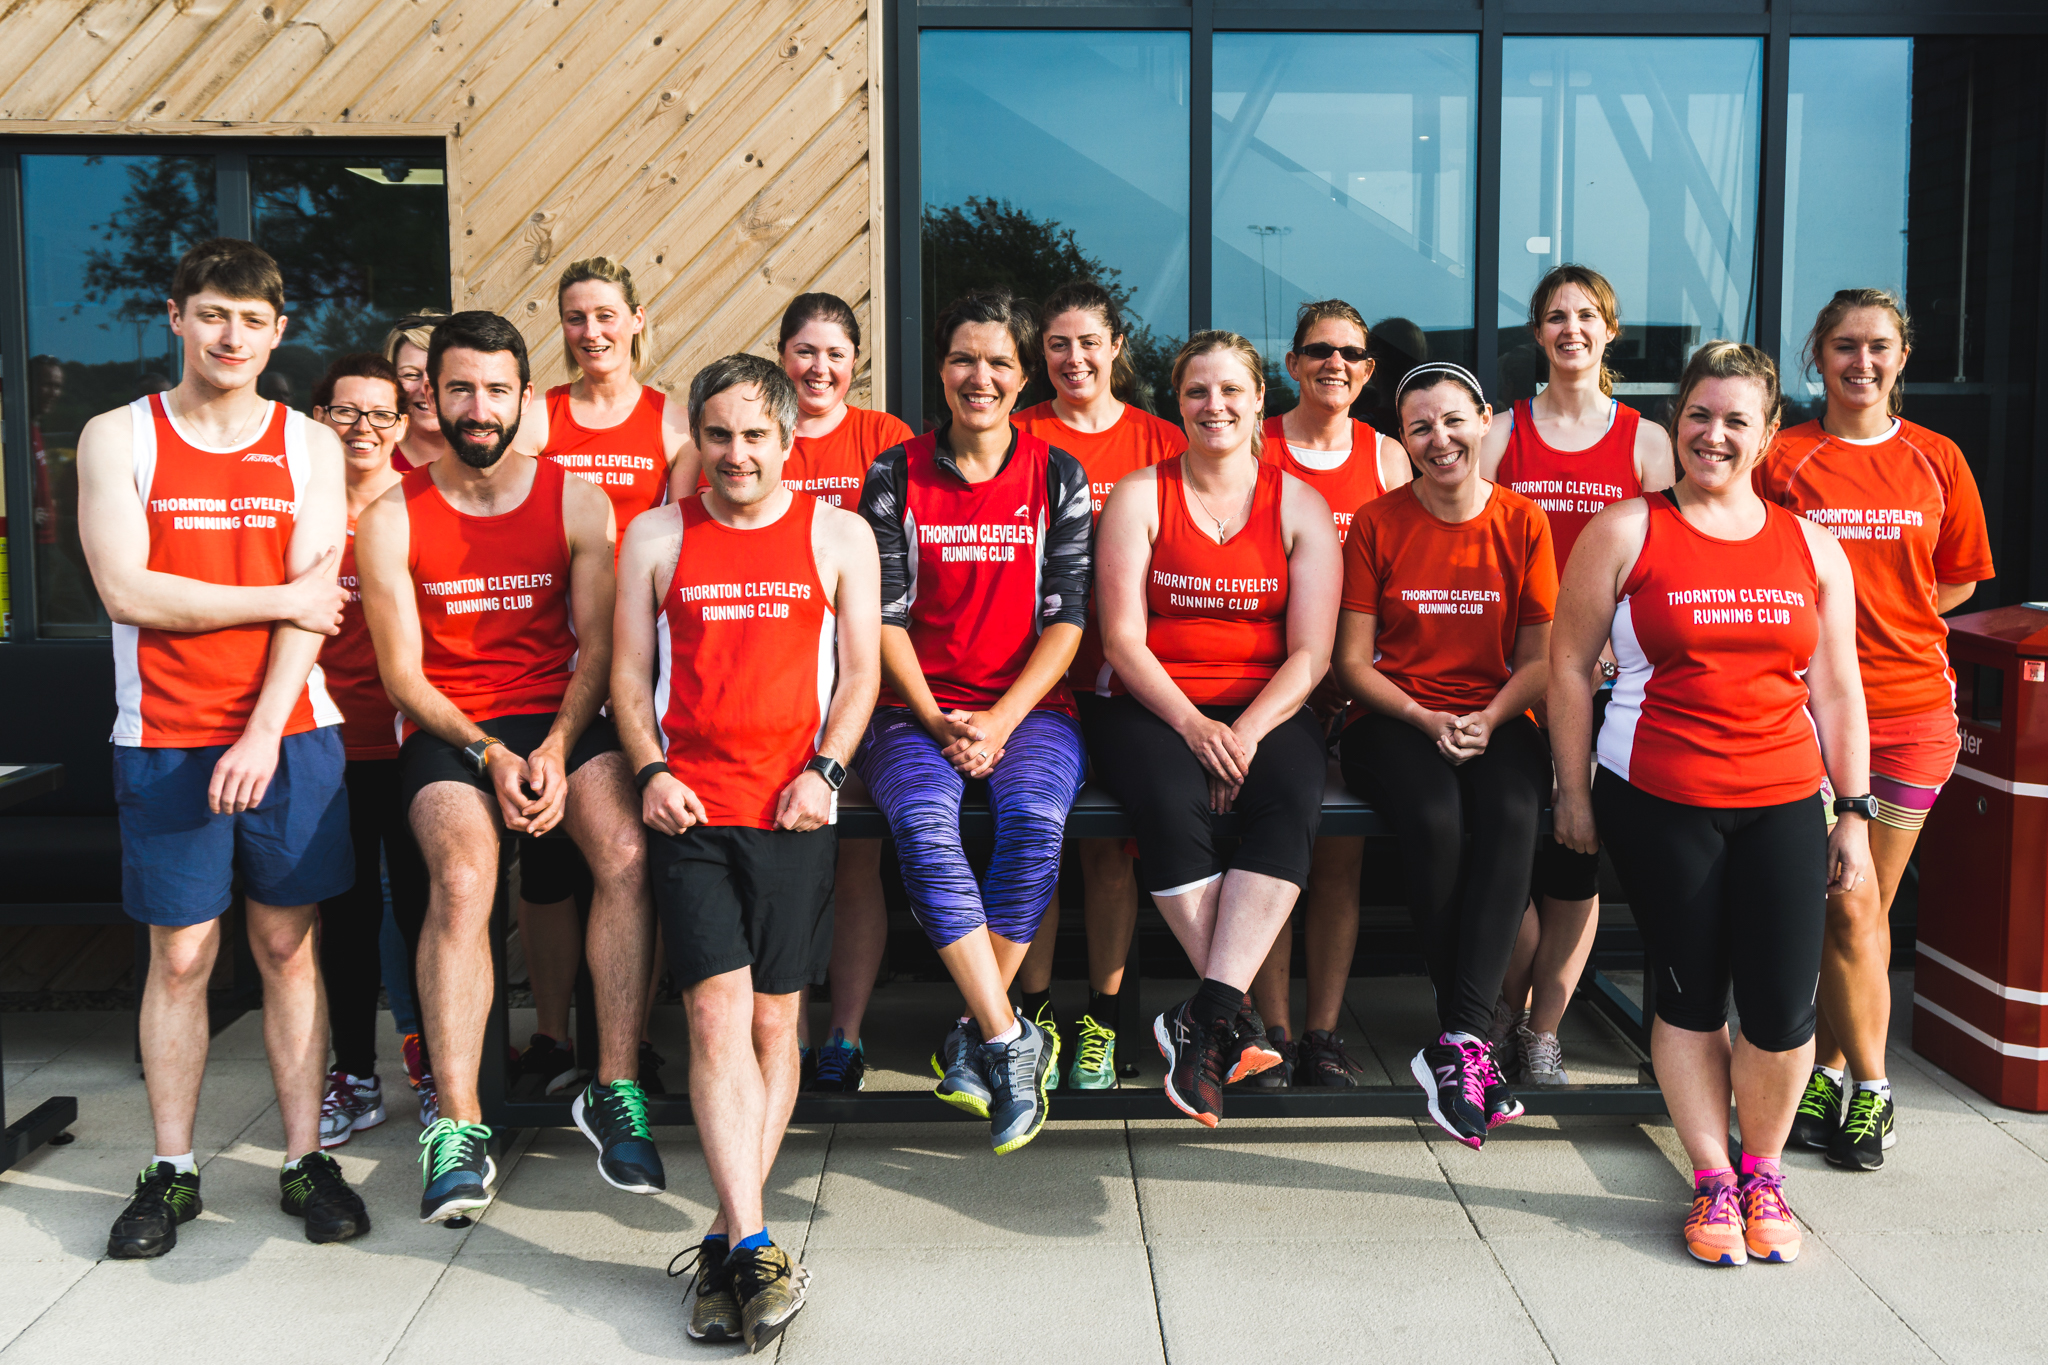 16-06-07 Team photo for Cleveleys and Thornton running club-43.jpg